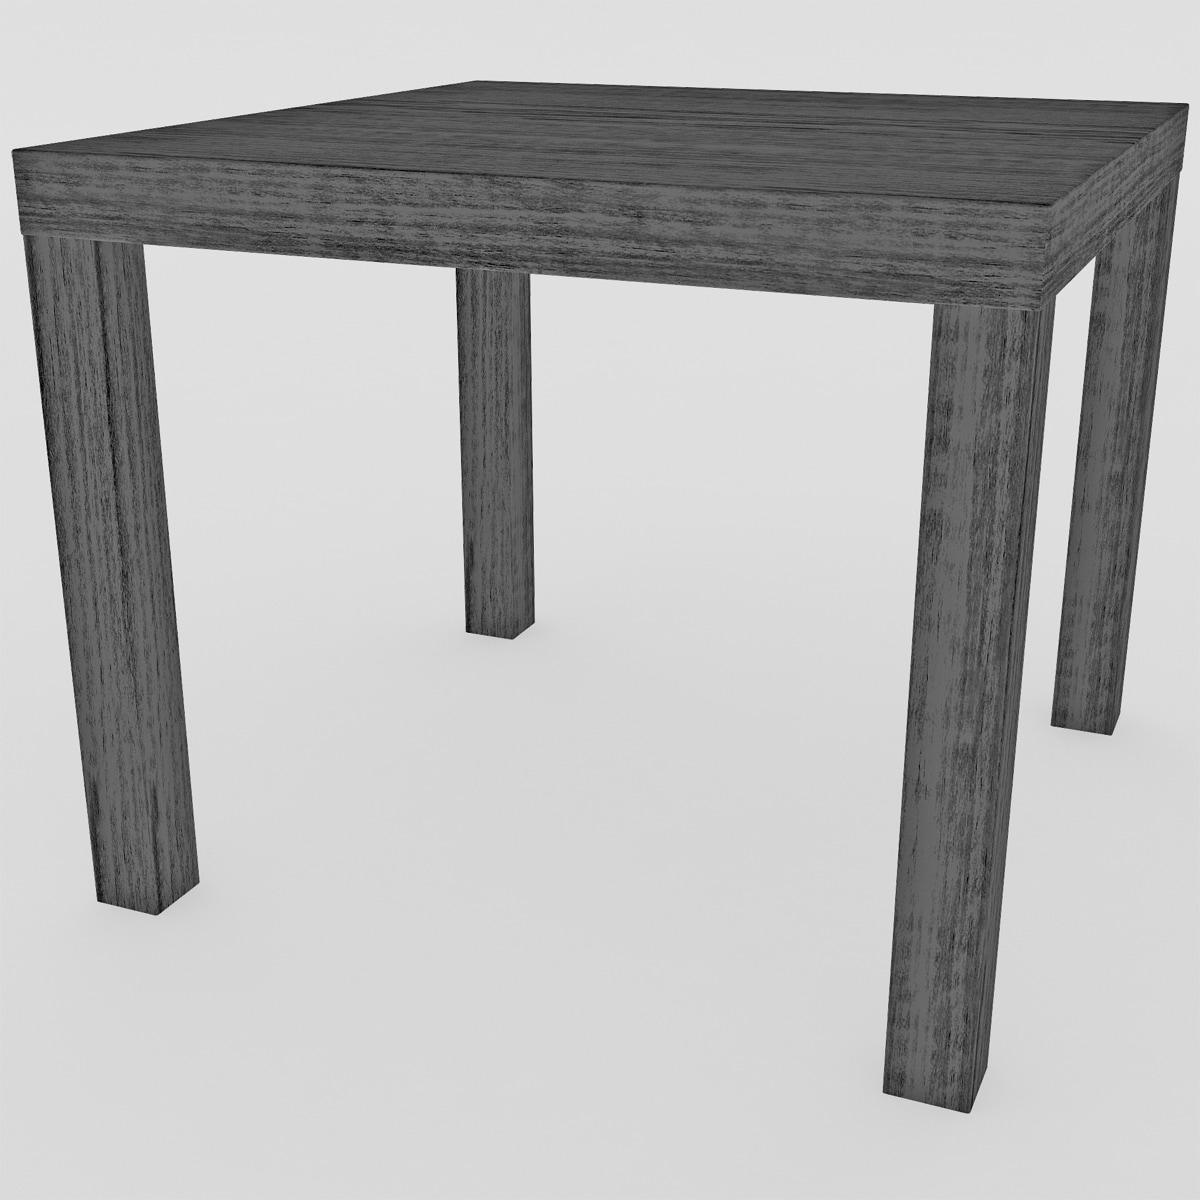 Ikea lack table 3d model for Table 6 3 asce 7 05